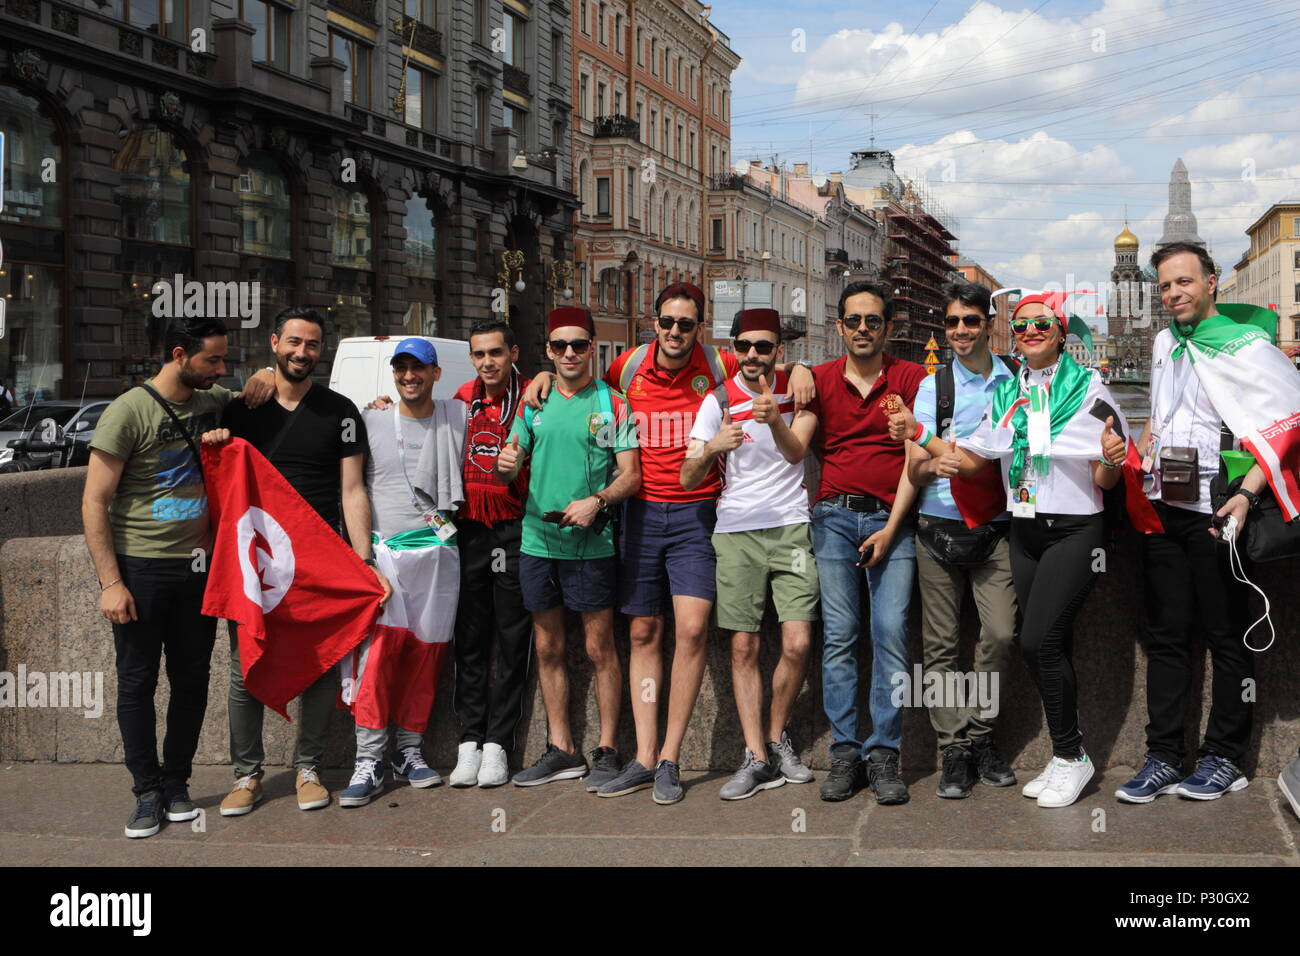 St. Petersburg, Russia - June 15, 2018: Iranian football fans on the streets of Saint Petersburg on the day of first match of FIFA World Cup 2018 in t - Stock Image